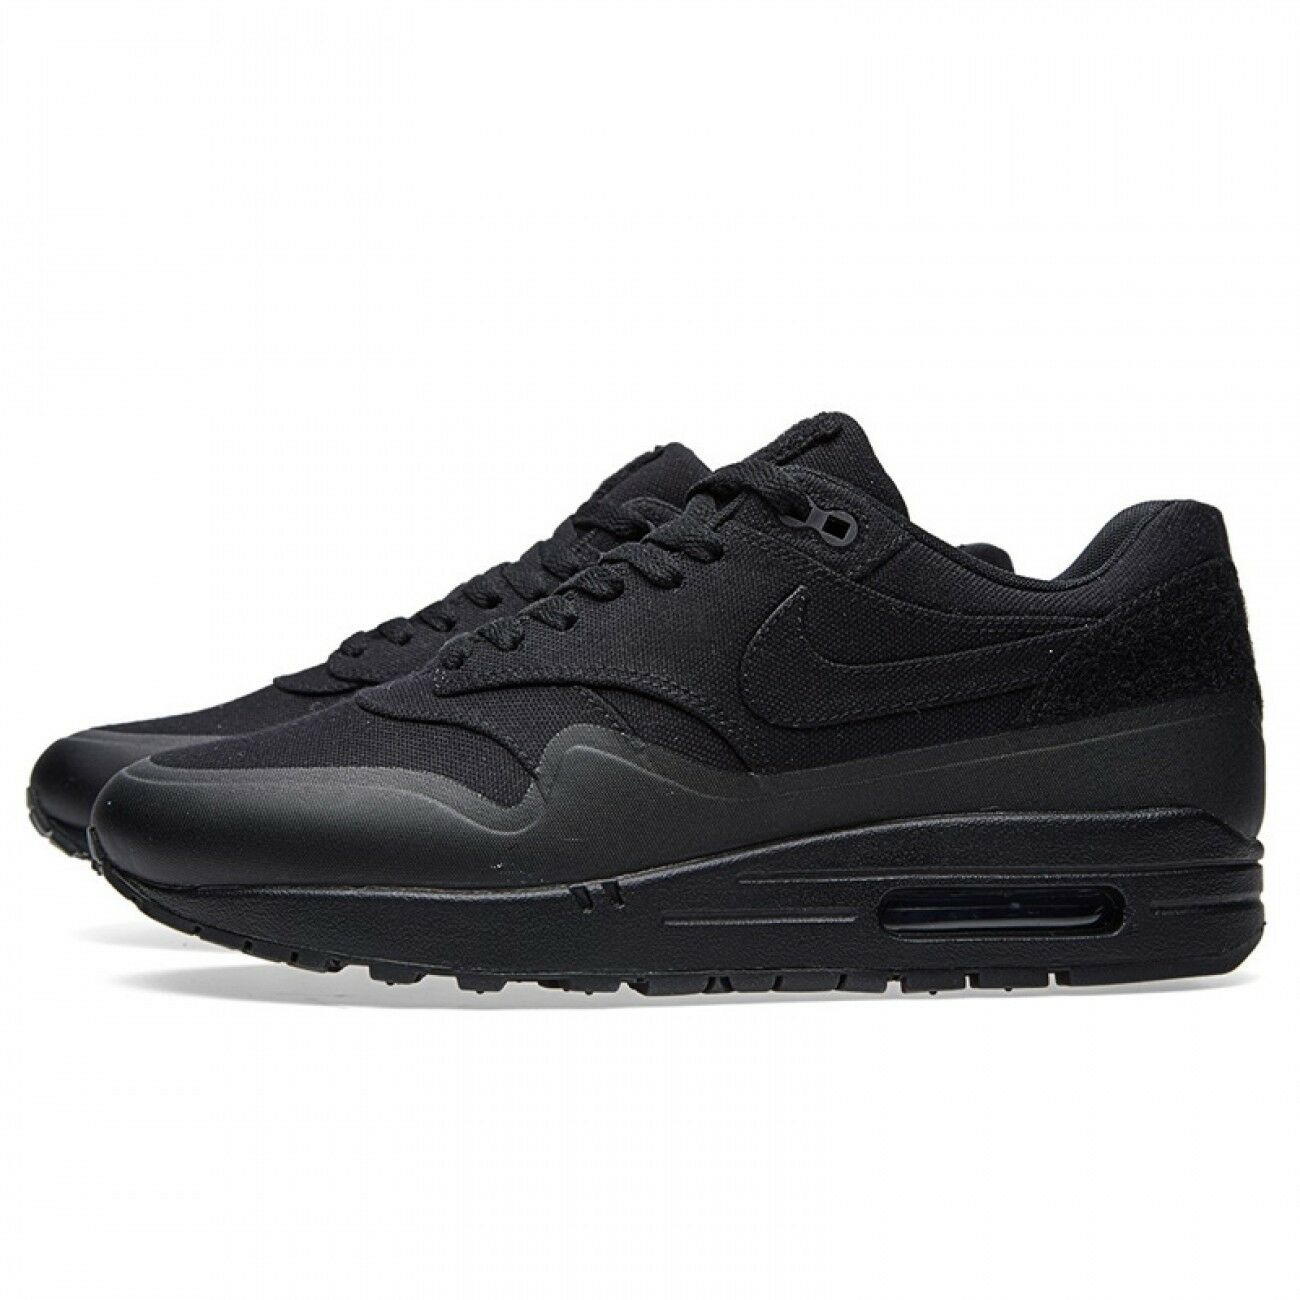 2018 Nike Air Max 1 V SP Patch Black US 6.5 704901-001 Patches Blue Green Red Cheap and beautiful fashion